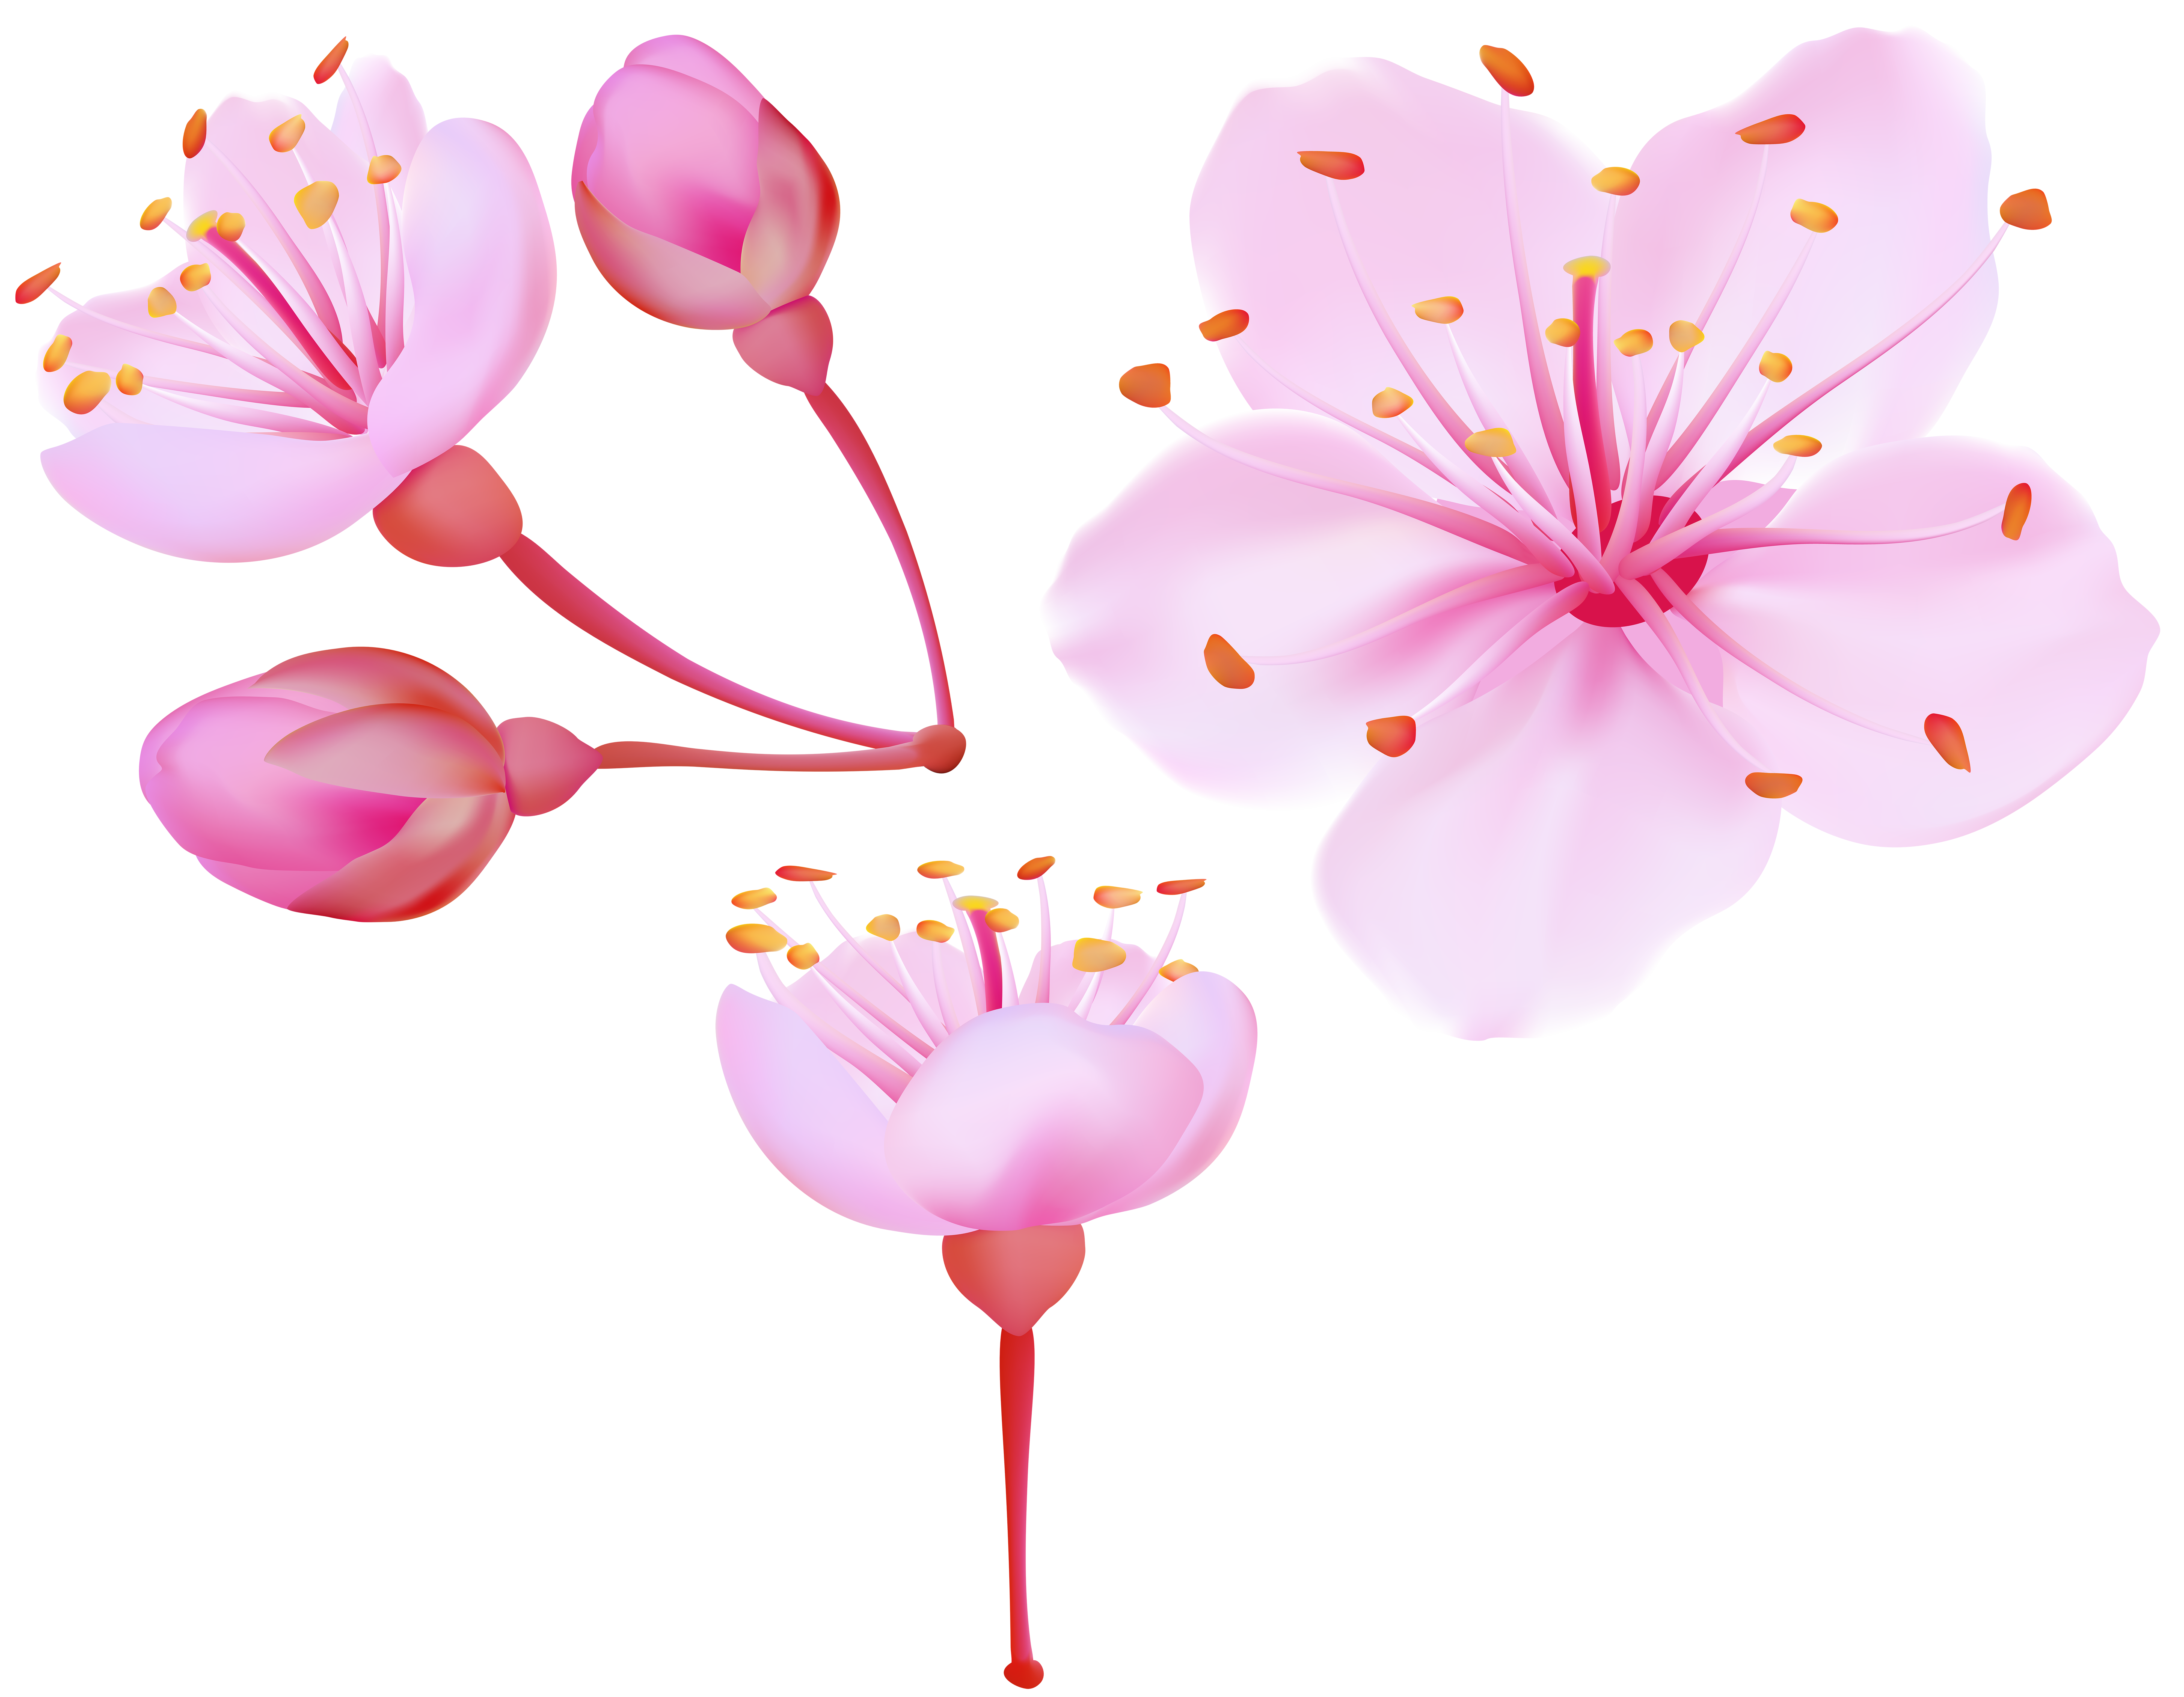 Spring blossoms clip art. Cherry blossom png png freeuse